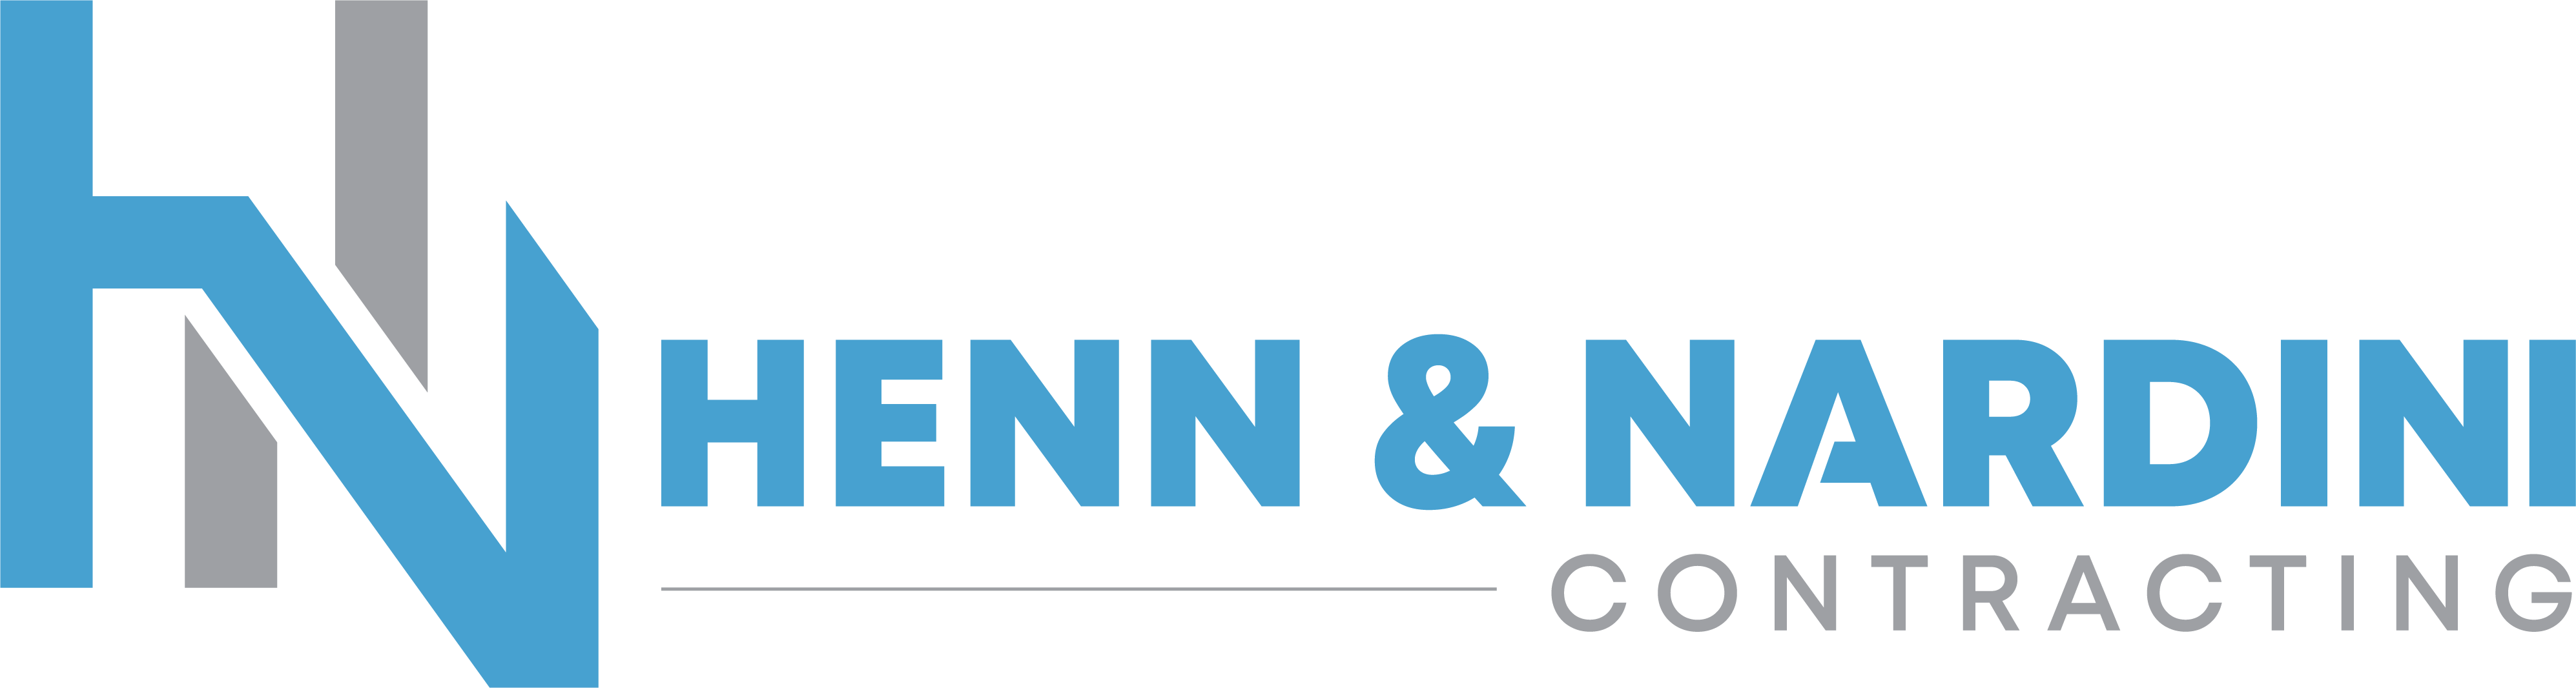 Henn & Nardini Contracting